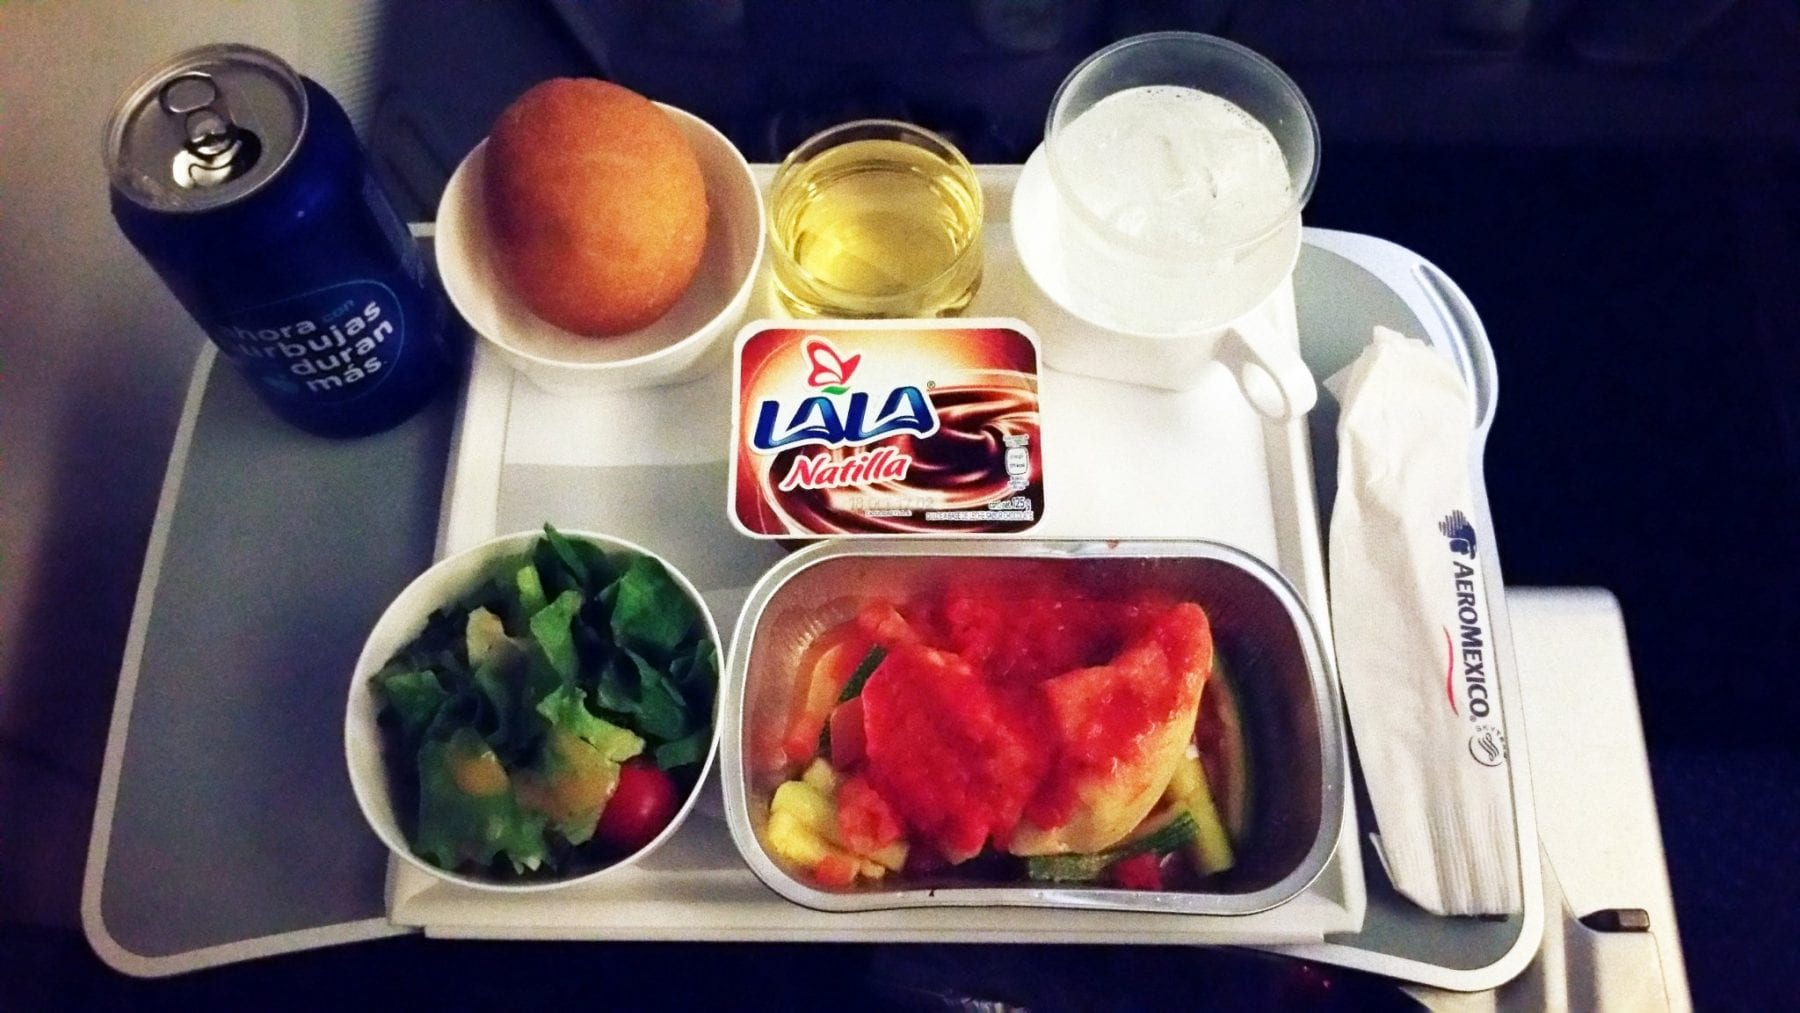 Mexico to Amsterdam on Aeromexico in economy class. Pasta Dish